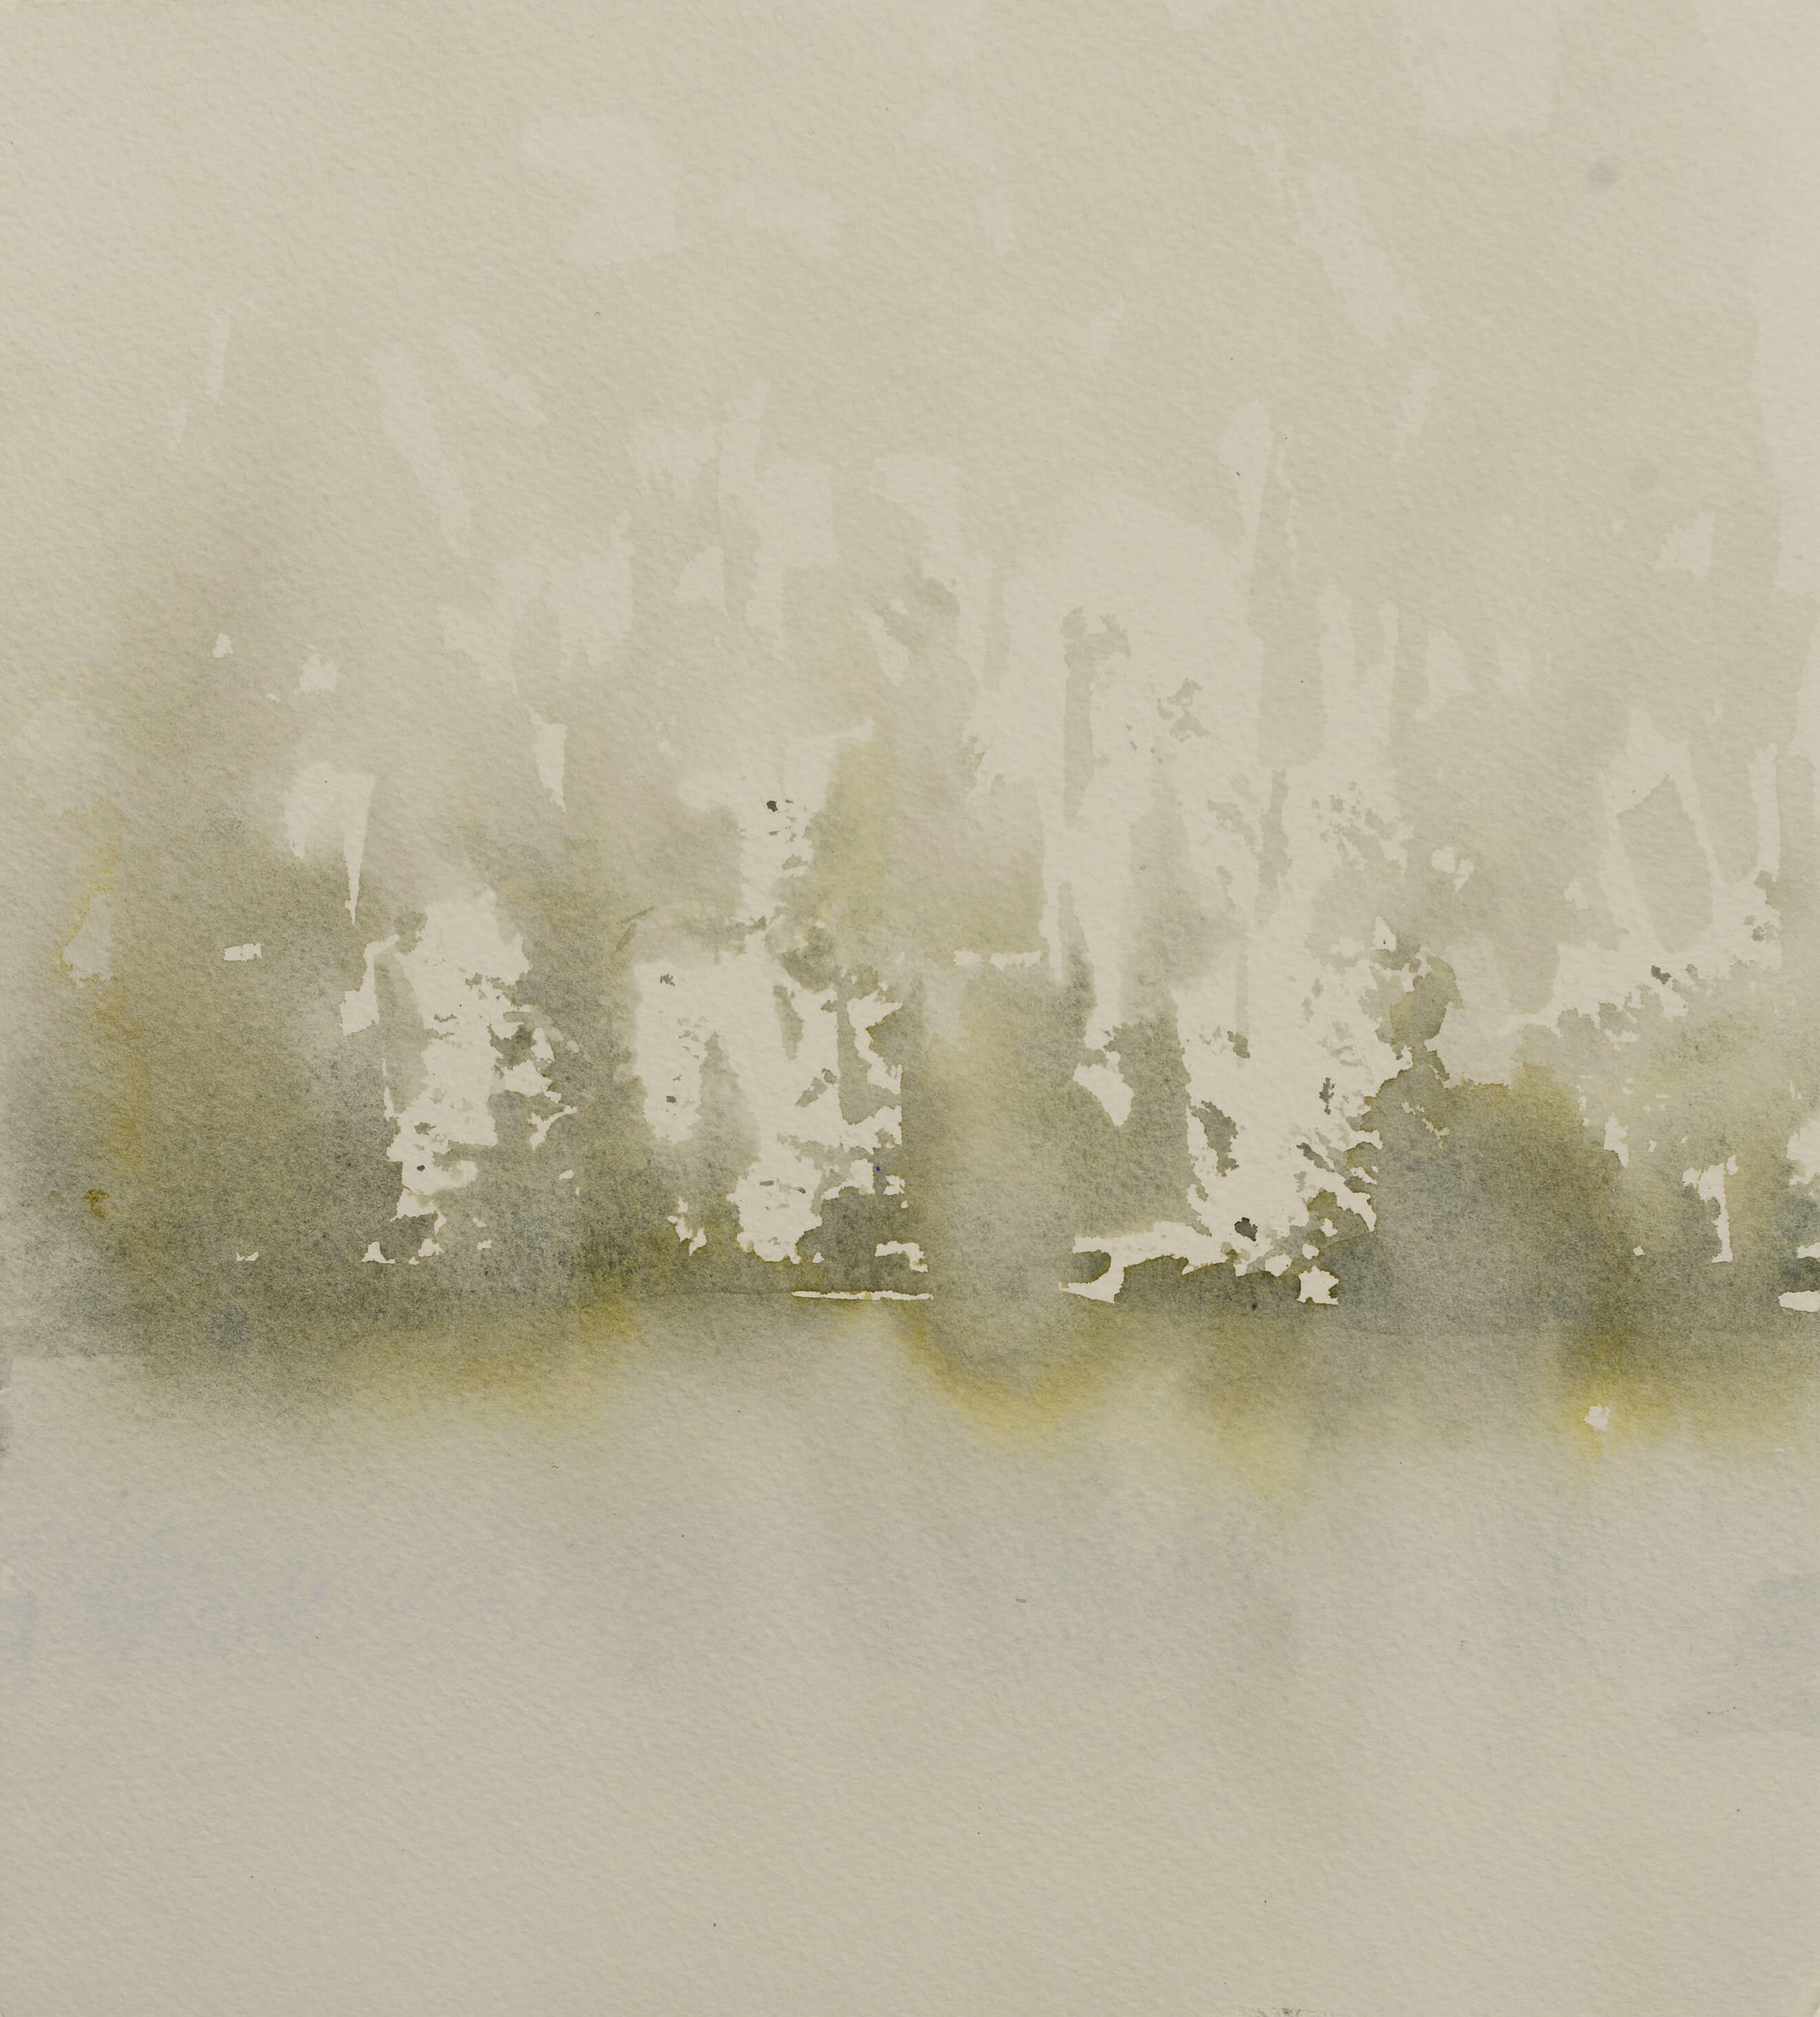 RHSK096 Matsubarako Lake Mist I ( Watercolour ) 30.5 x 28 cm